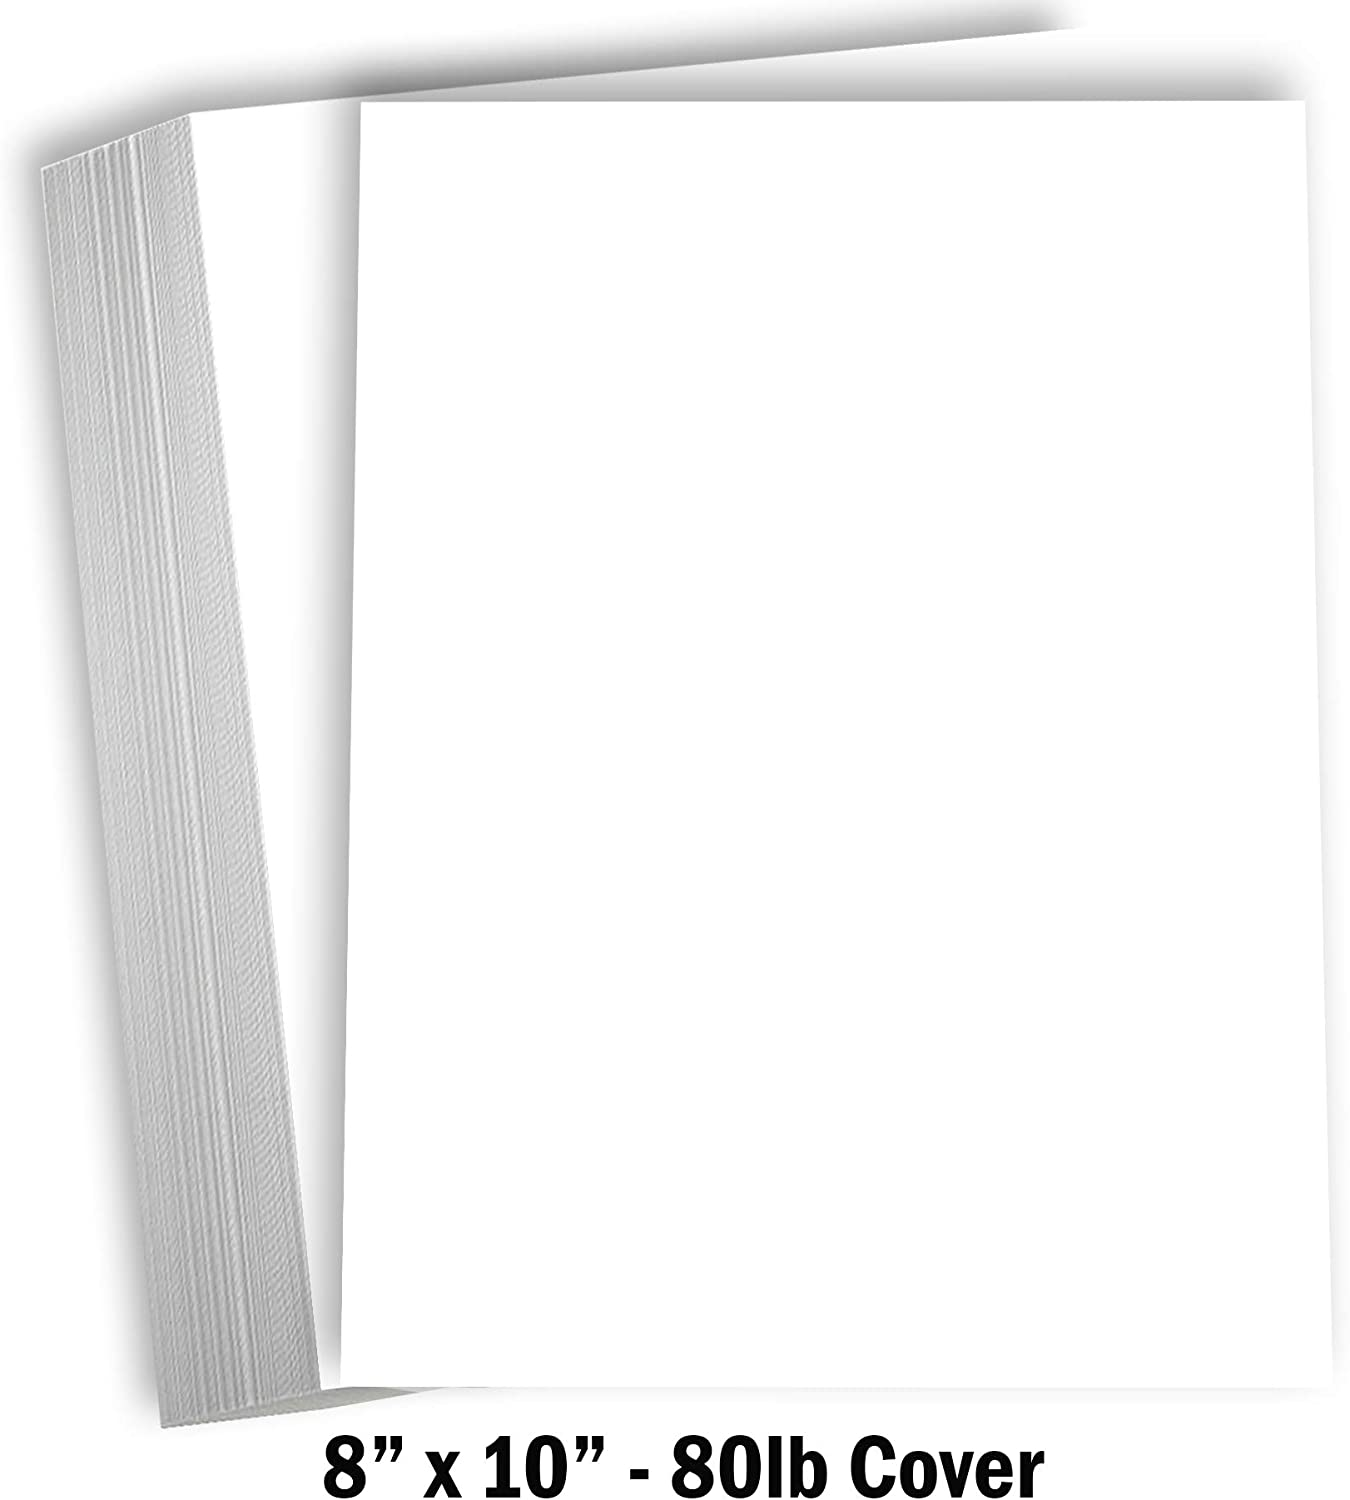 "Hamilco White Cardstock Thick Paper - 8 x 10"" Blank Heavy Weight 80 lb Cover Card Stock - 50 Pack"